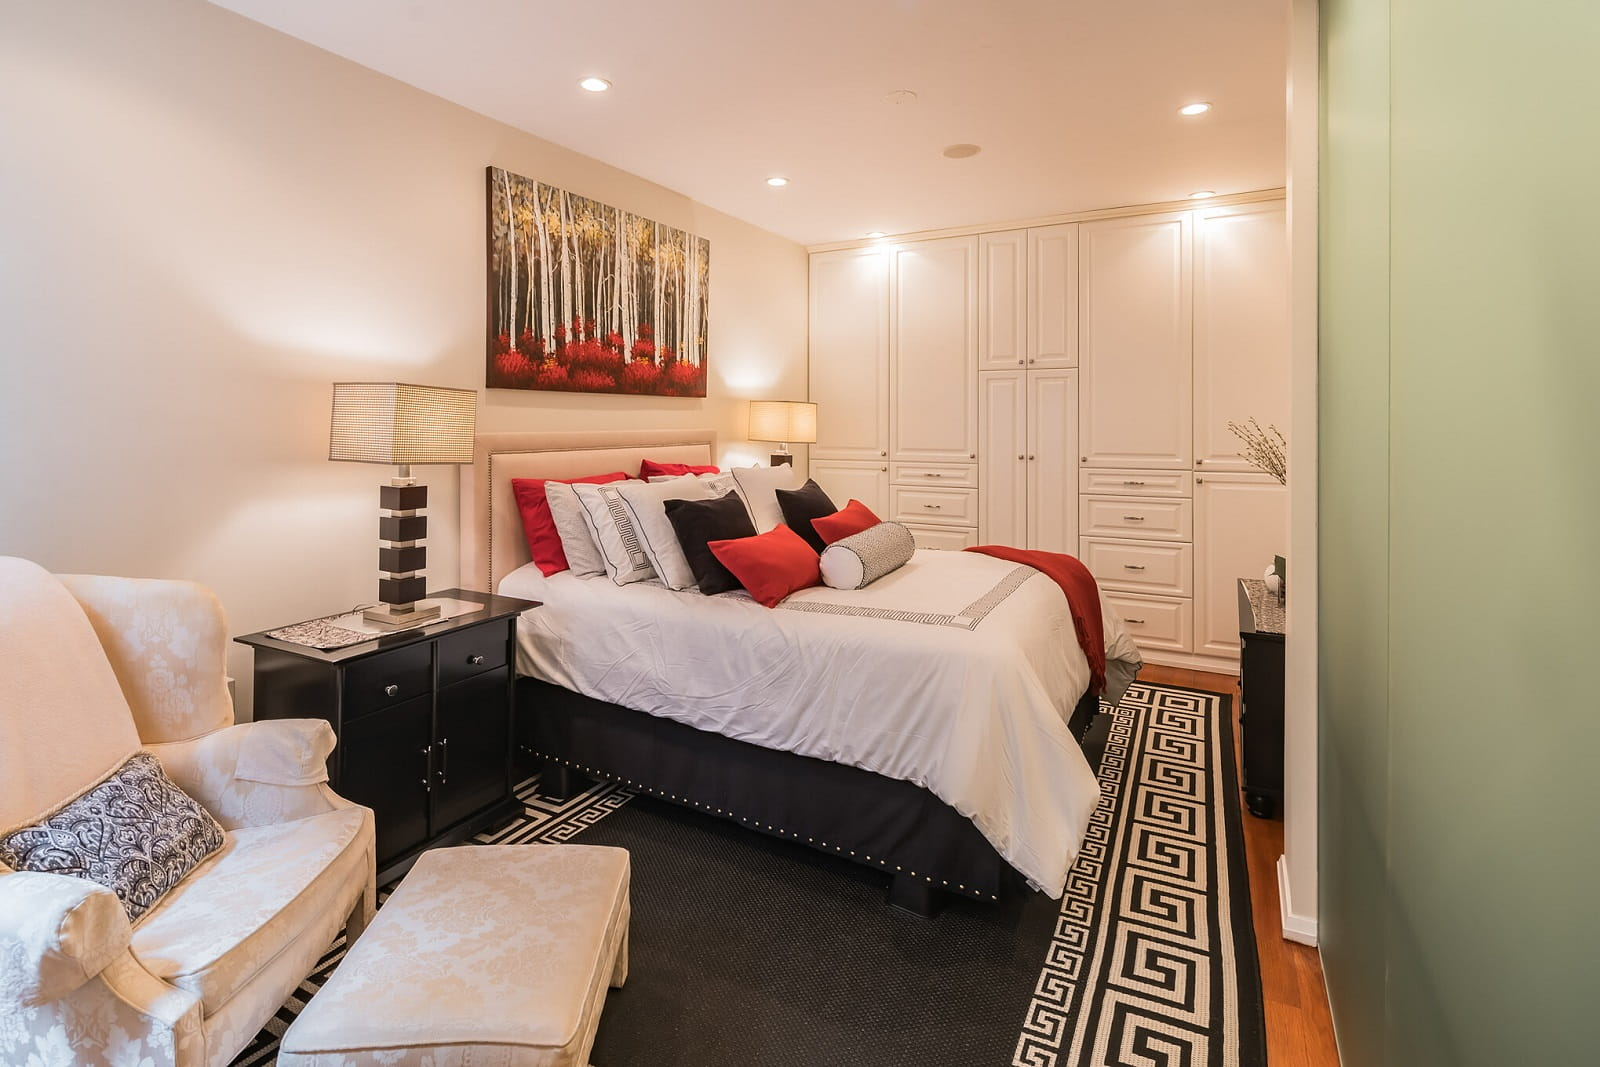 Real Estate Photography in Newyork City - NY - USA - Bedroom View